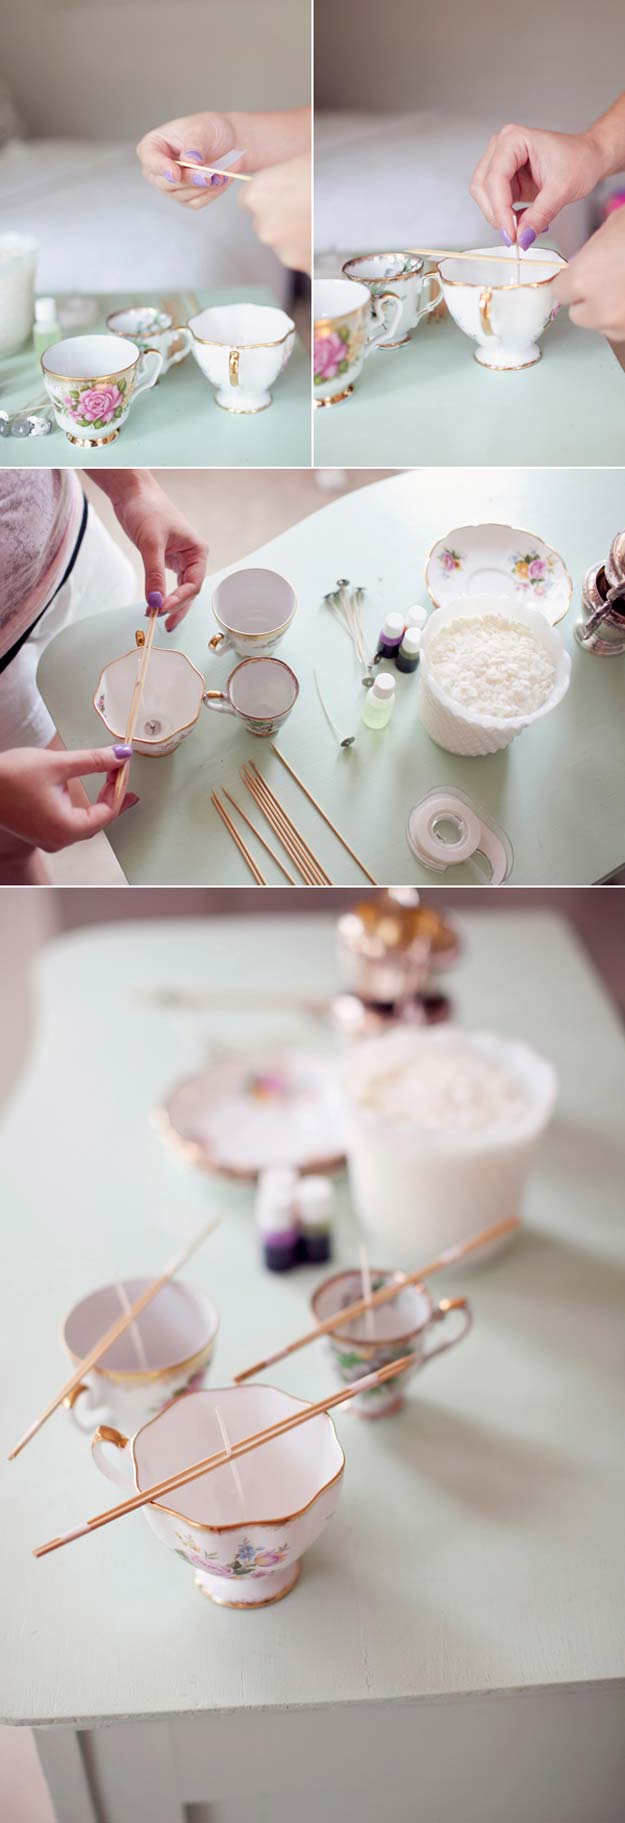 Fun Dollar Store Crafts for Teens - DIY Vintage Teacup Candles - Cheap and Easy DIY Ideas for Teenagers to Make for Dollar Stores - Inexpensive Gifts and Room Decor for Tweens, Boys and Girls - Awesome Step by Step Tutorials with Instructions for Cool DIY Projects http://diyprojectsforteens.com/dollar-store-crafts-teens